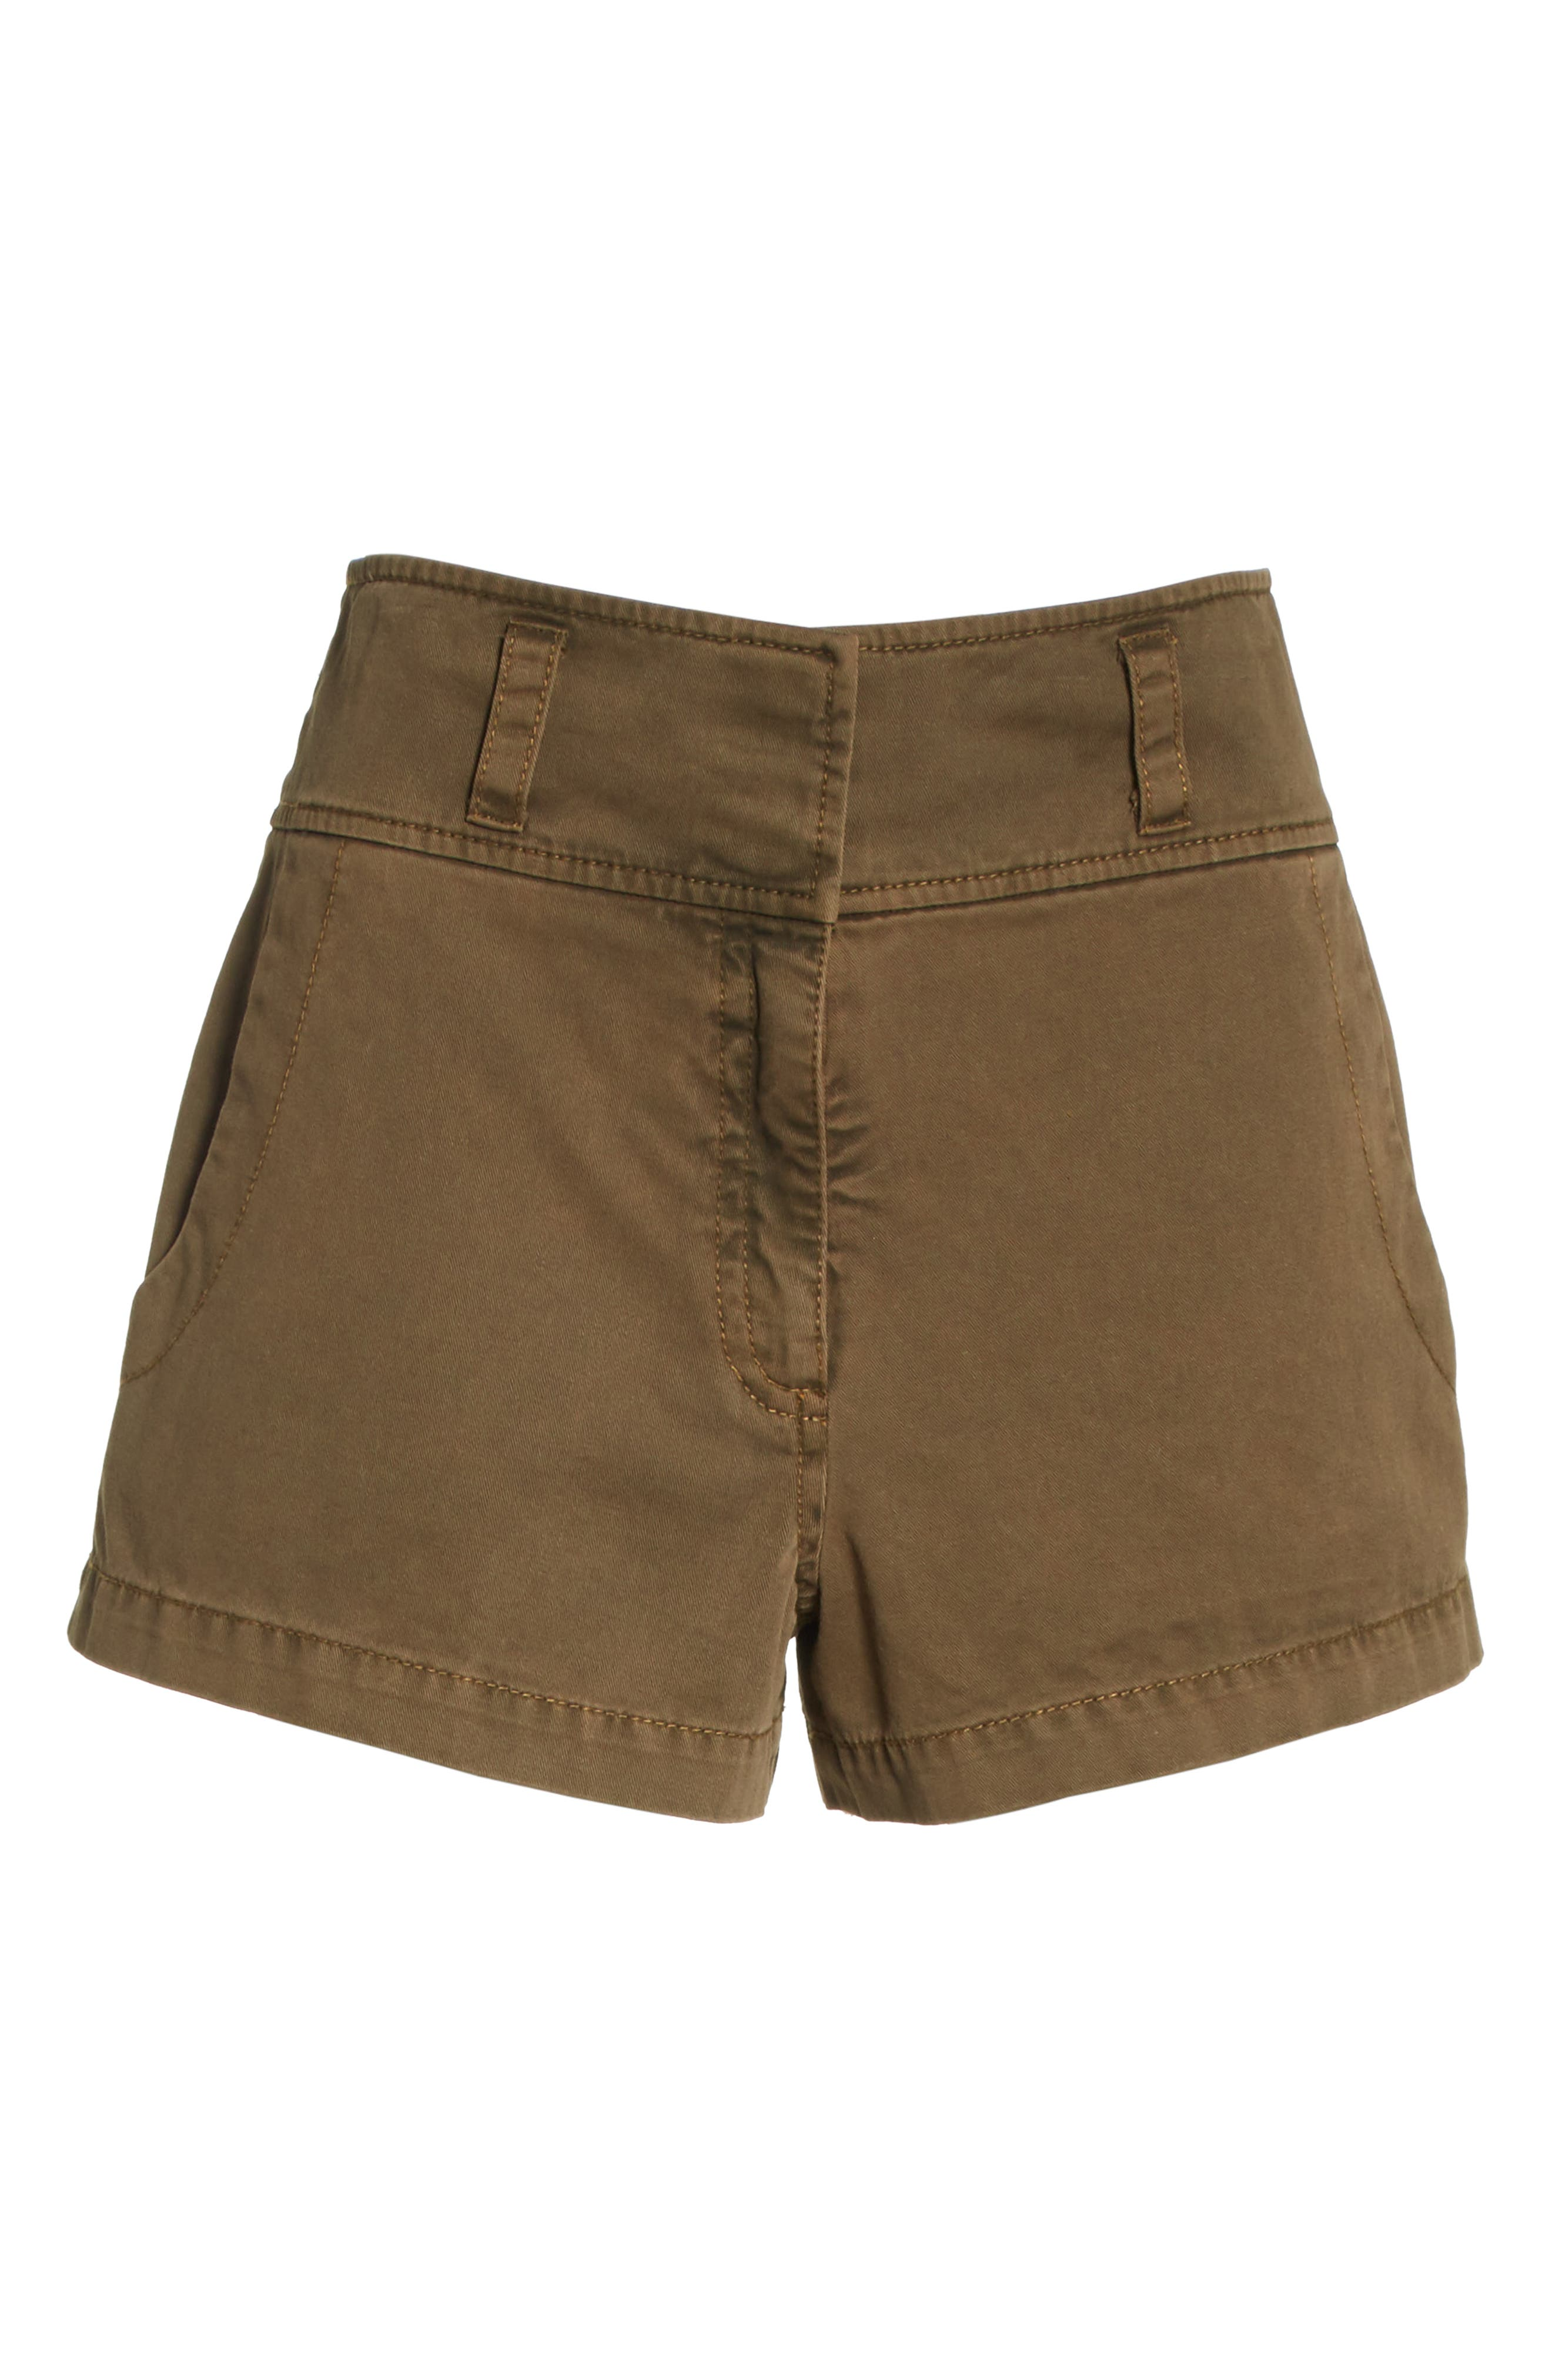 Tour Les Jour Shiloh Shorts,                             Alternate thumbnail 6, color,                             Olive/ Amber